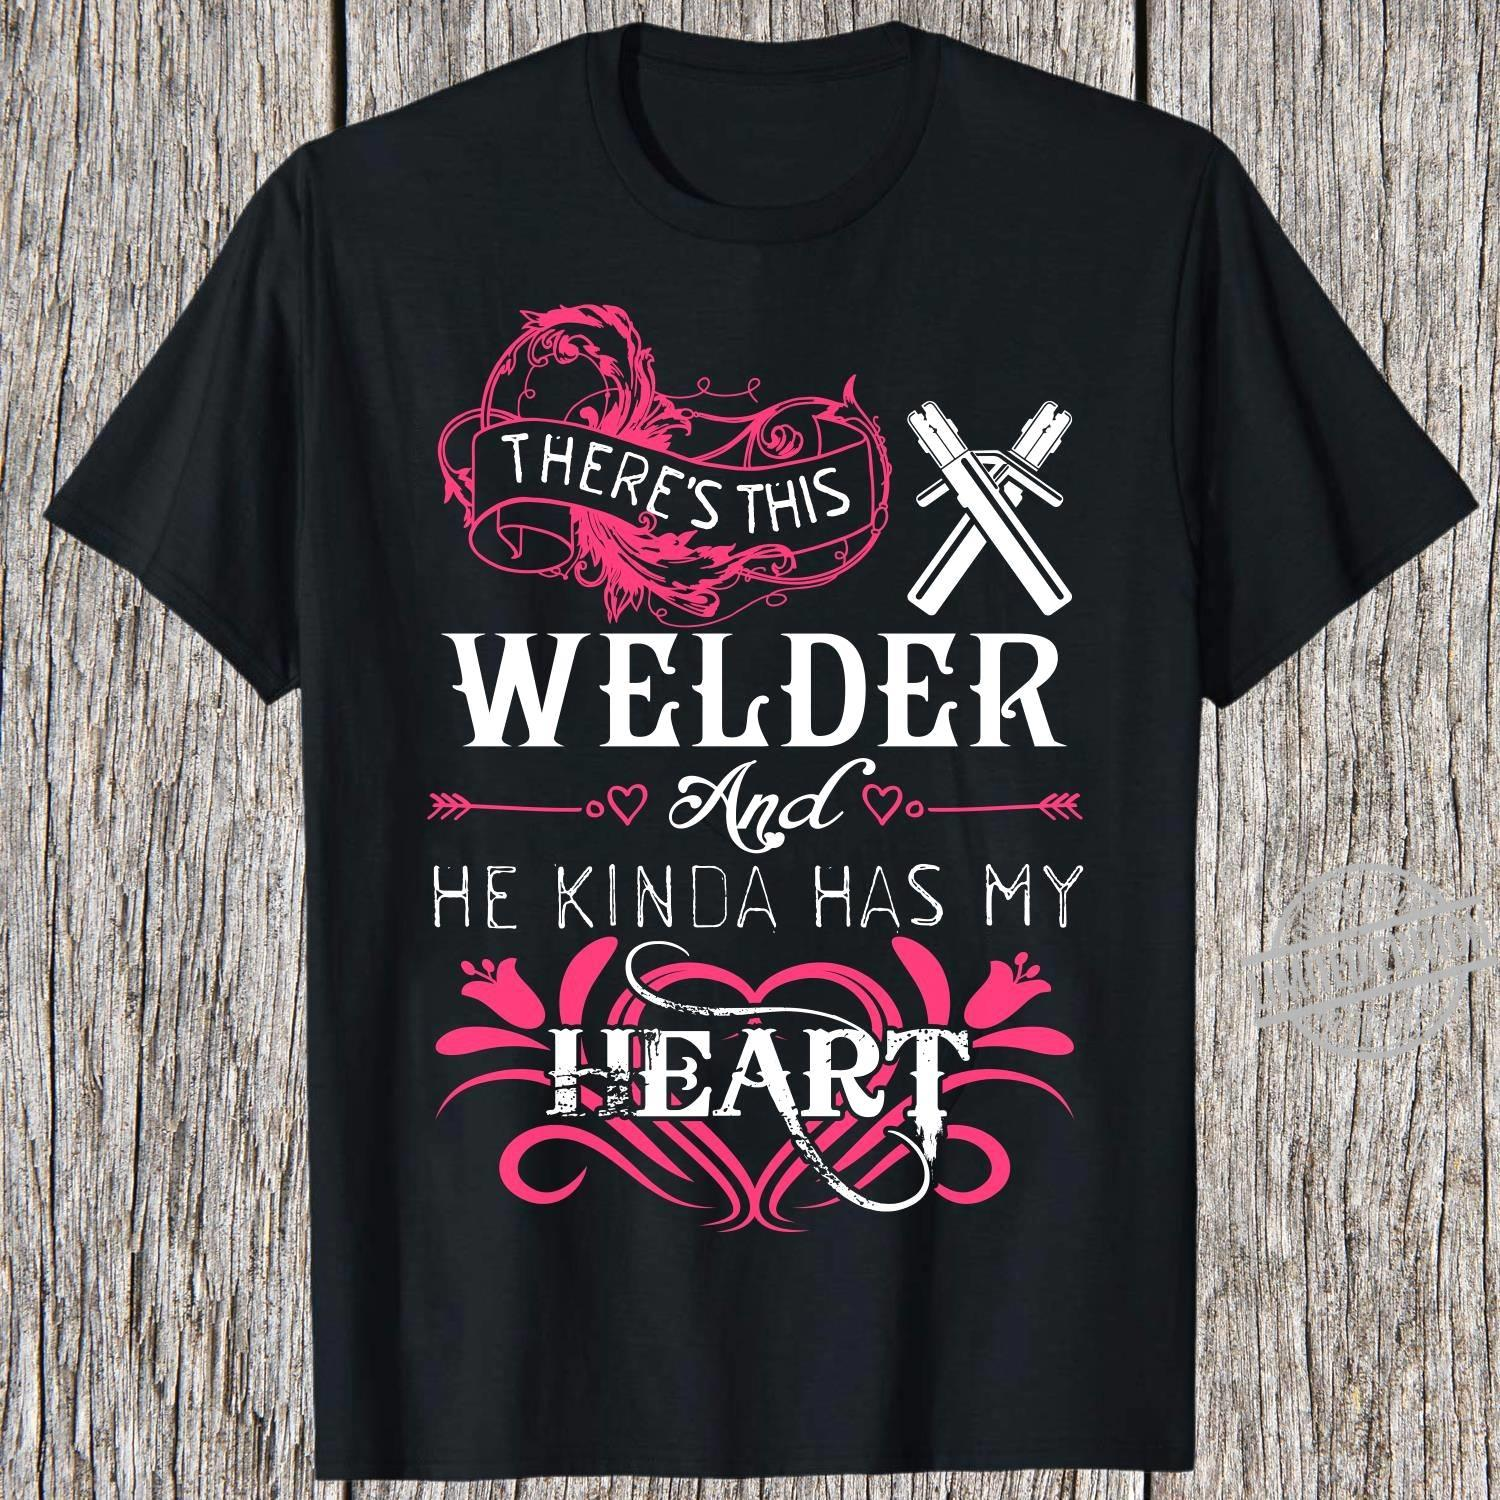 There's This Welder And He Kinda Has My Heart Shirt